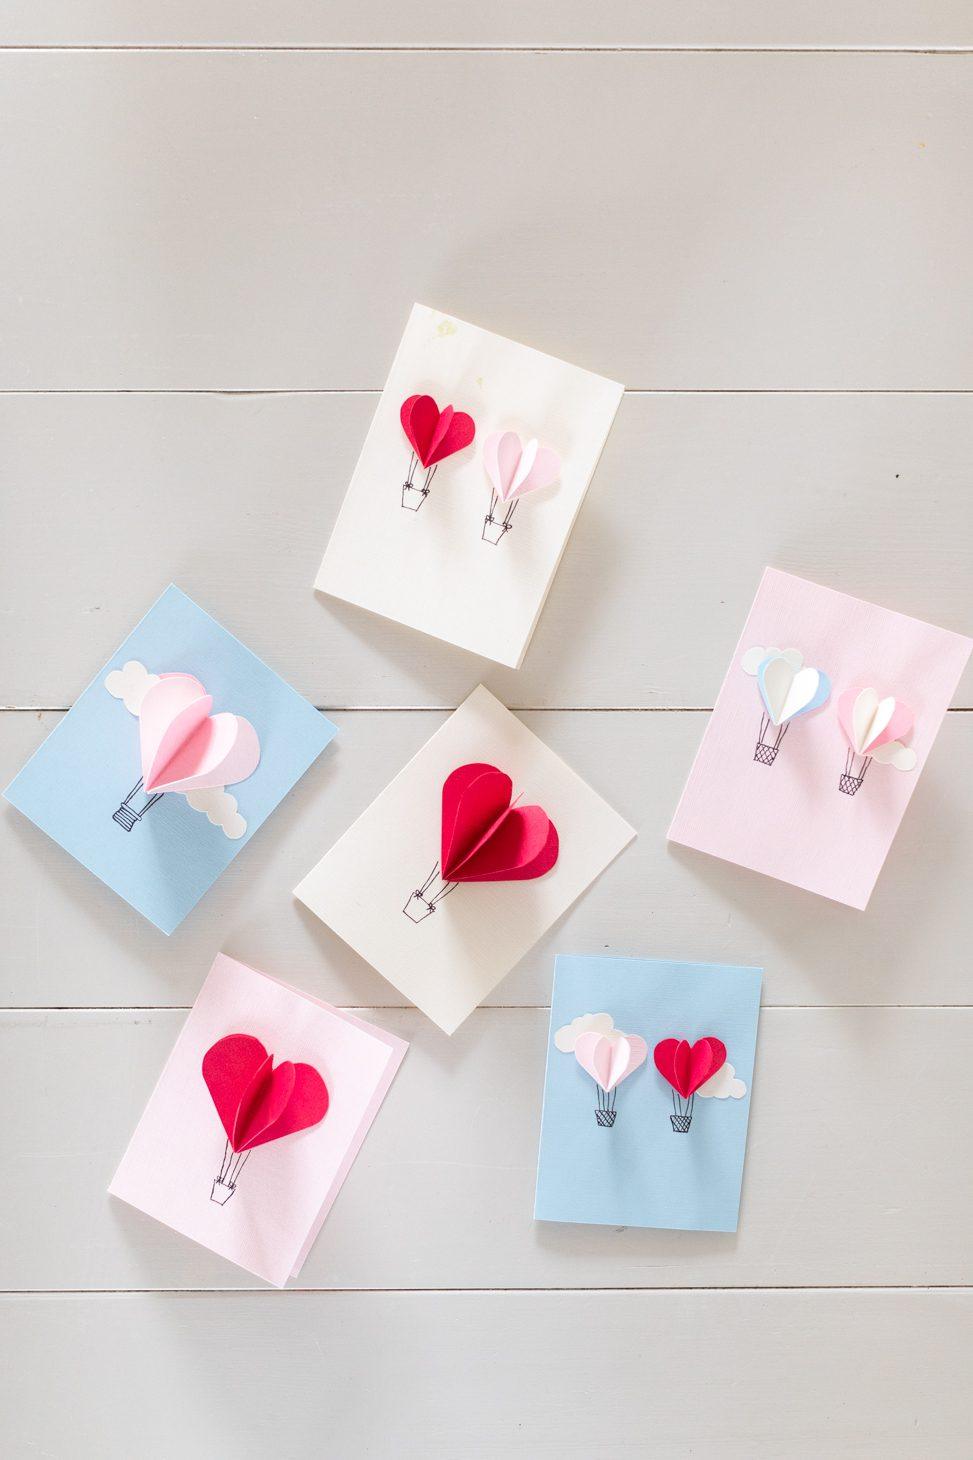 A fun Valentine's Day inspired DIY to make for your significant other!